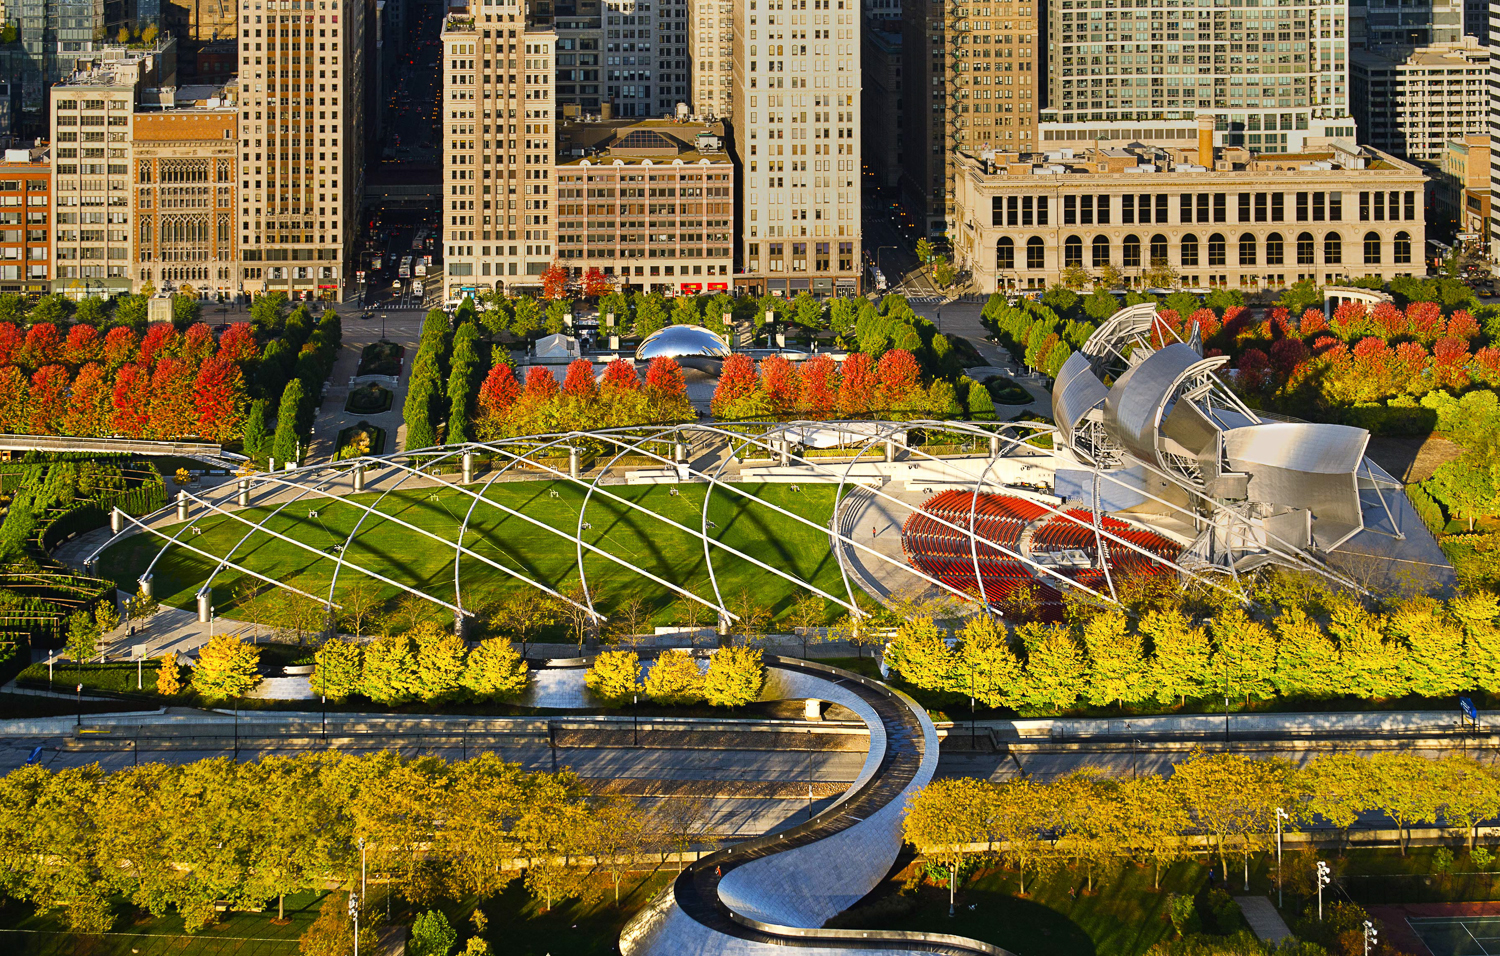 Image Title:  Millennium Park Fall - Aerial   Mat Sizes:  8x10, 11x14, 16x20   Float Mount Sizes:  12x18, 16x24, 20x30, 24x36, 28x42, 32x48, 36x54, 40x60